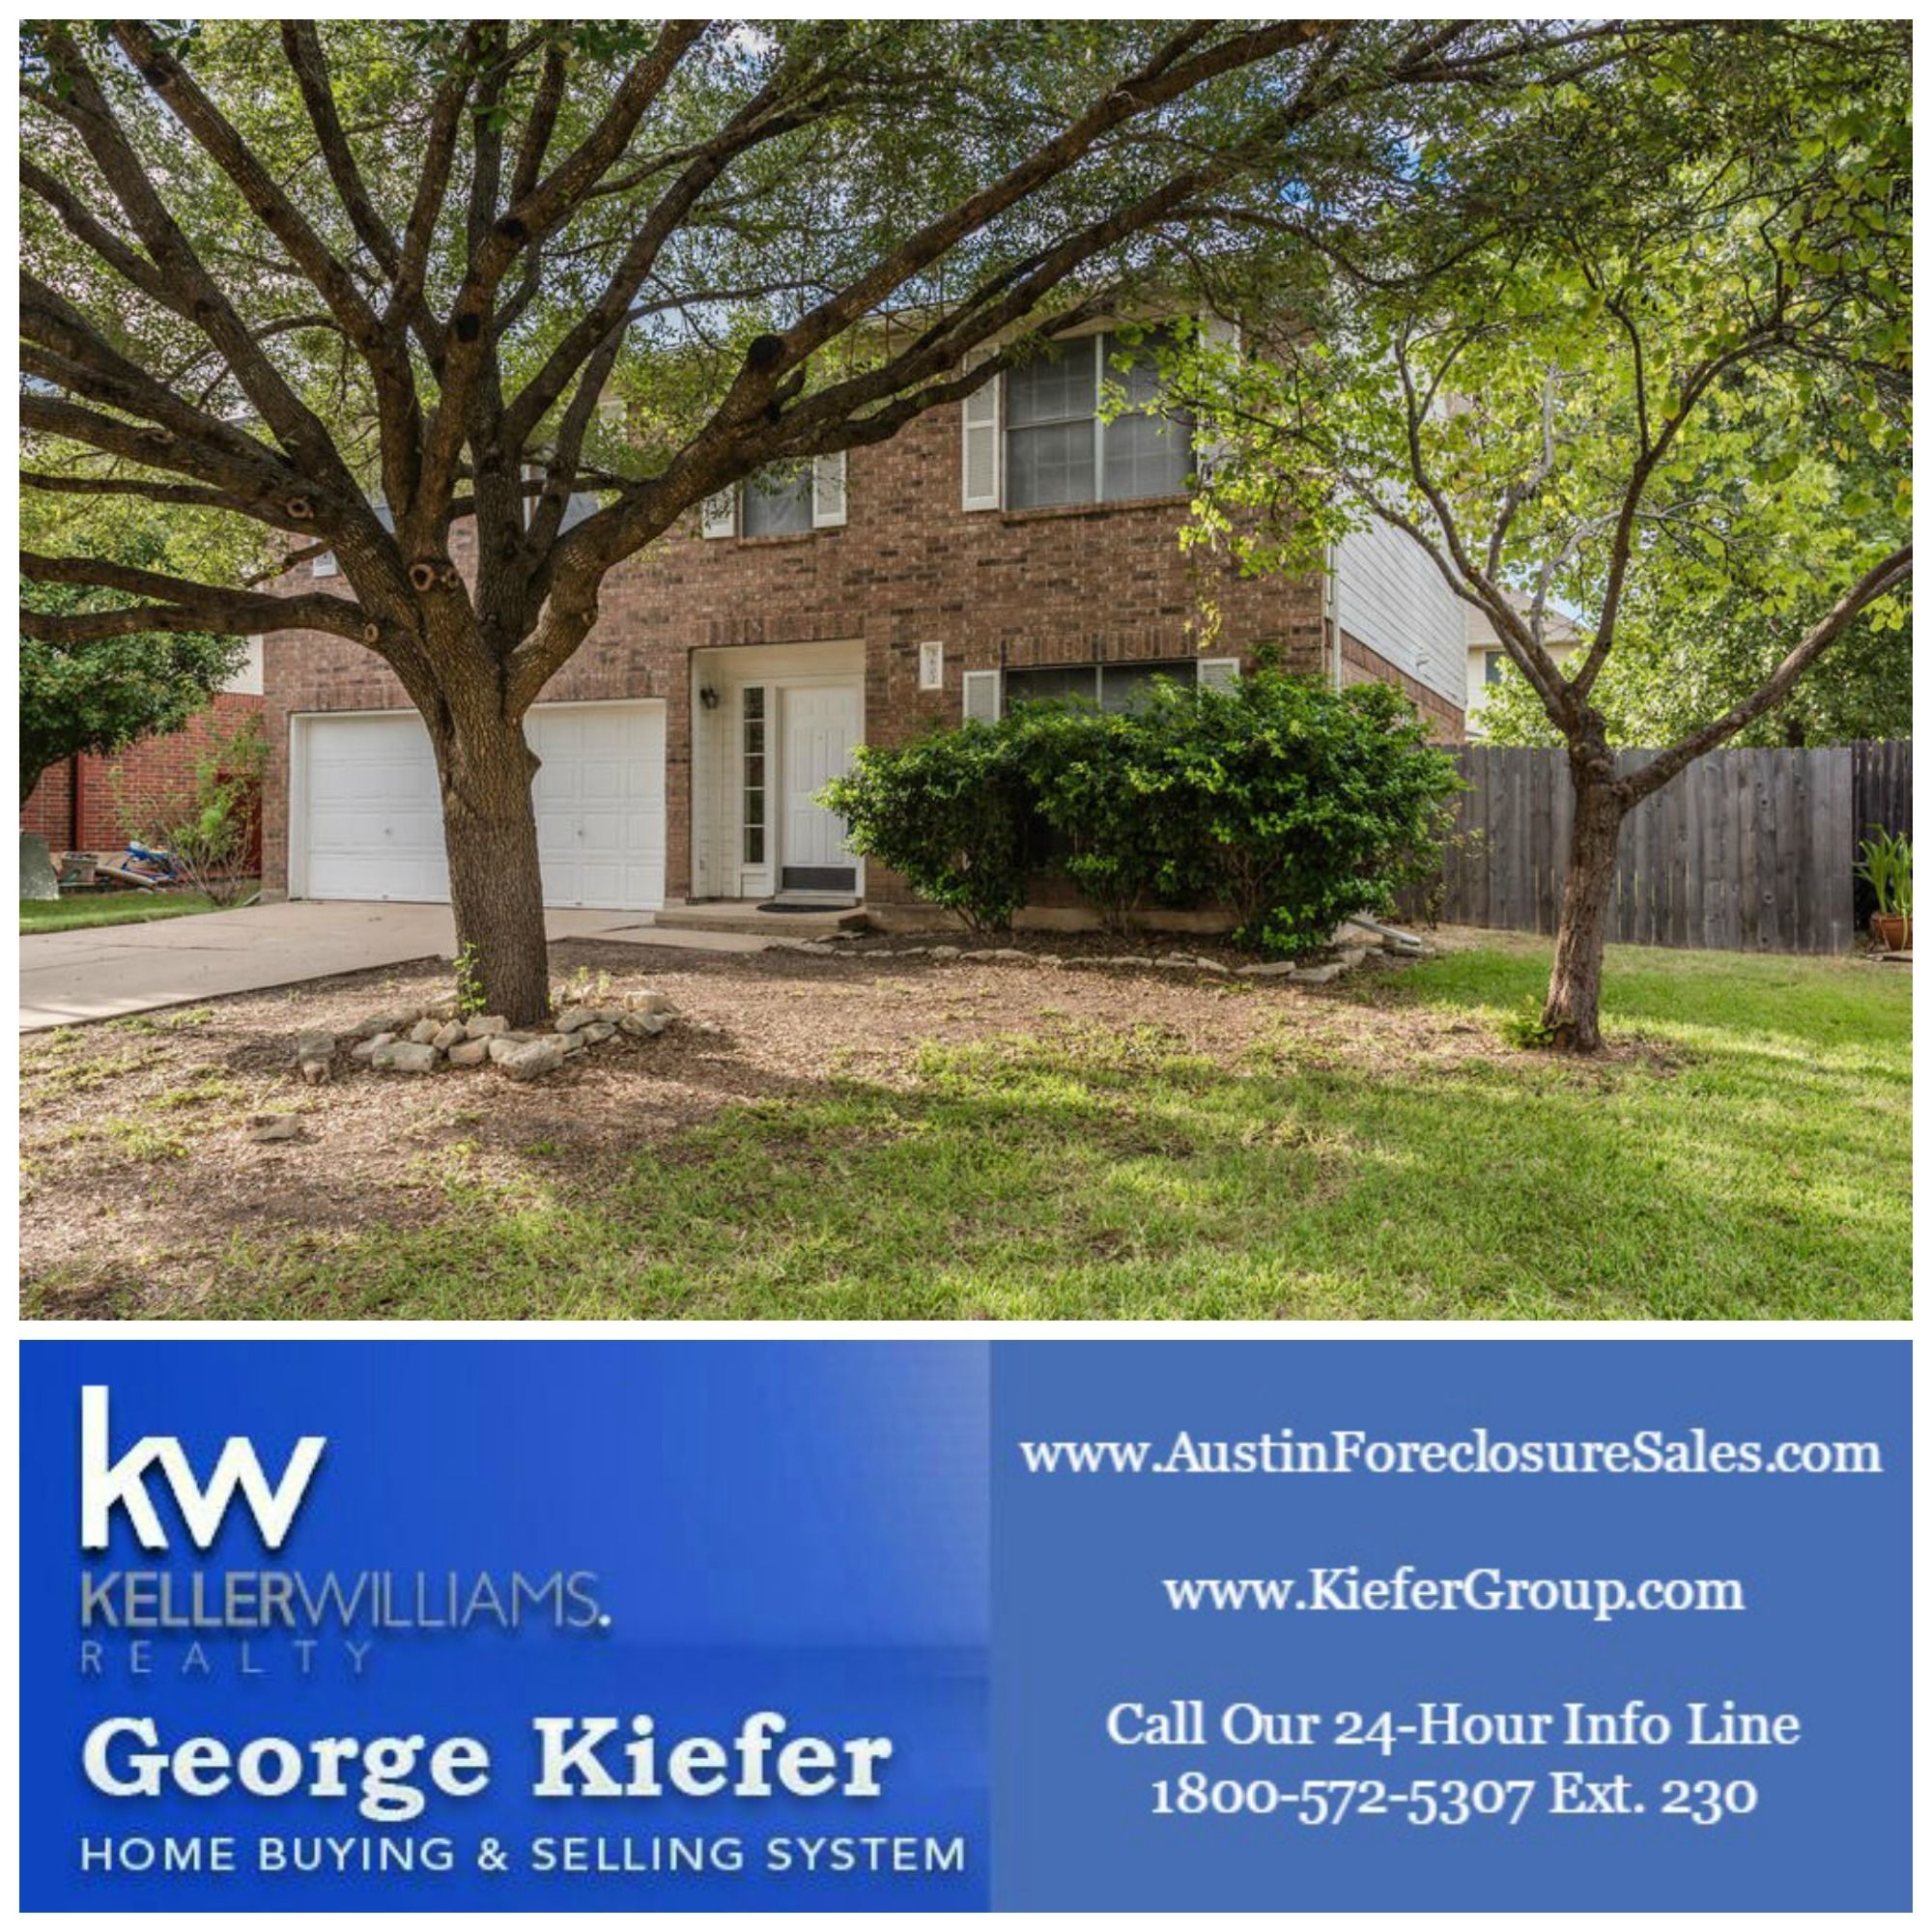 Apartments For Sale Texas: 4 Bedroom Built By Wilshire Updated 2014 In Round Rock